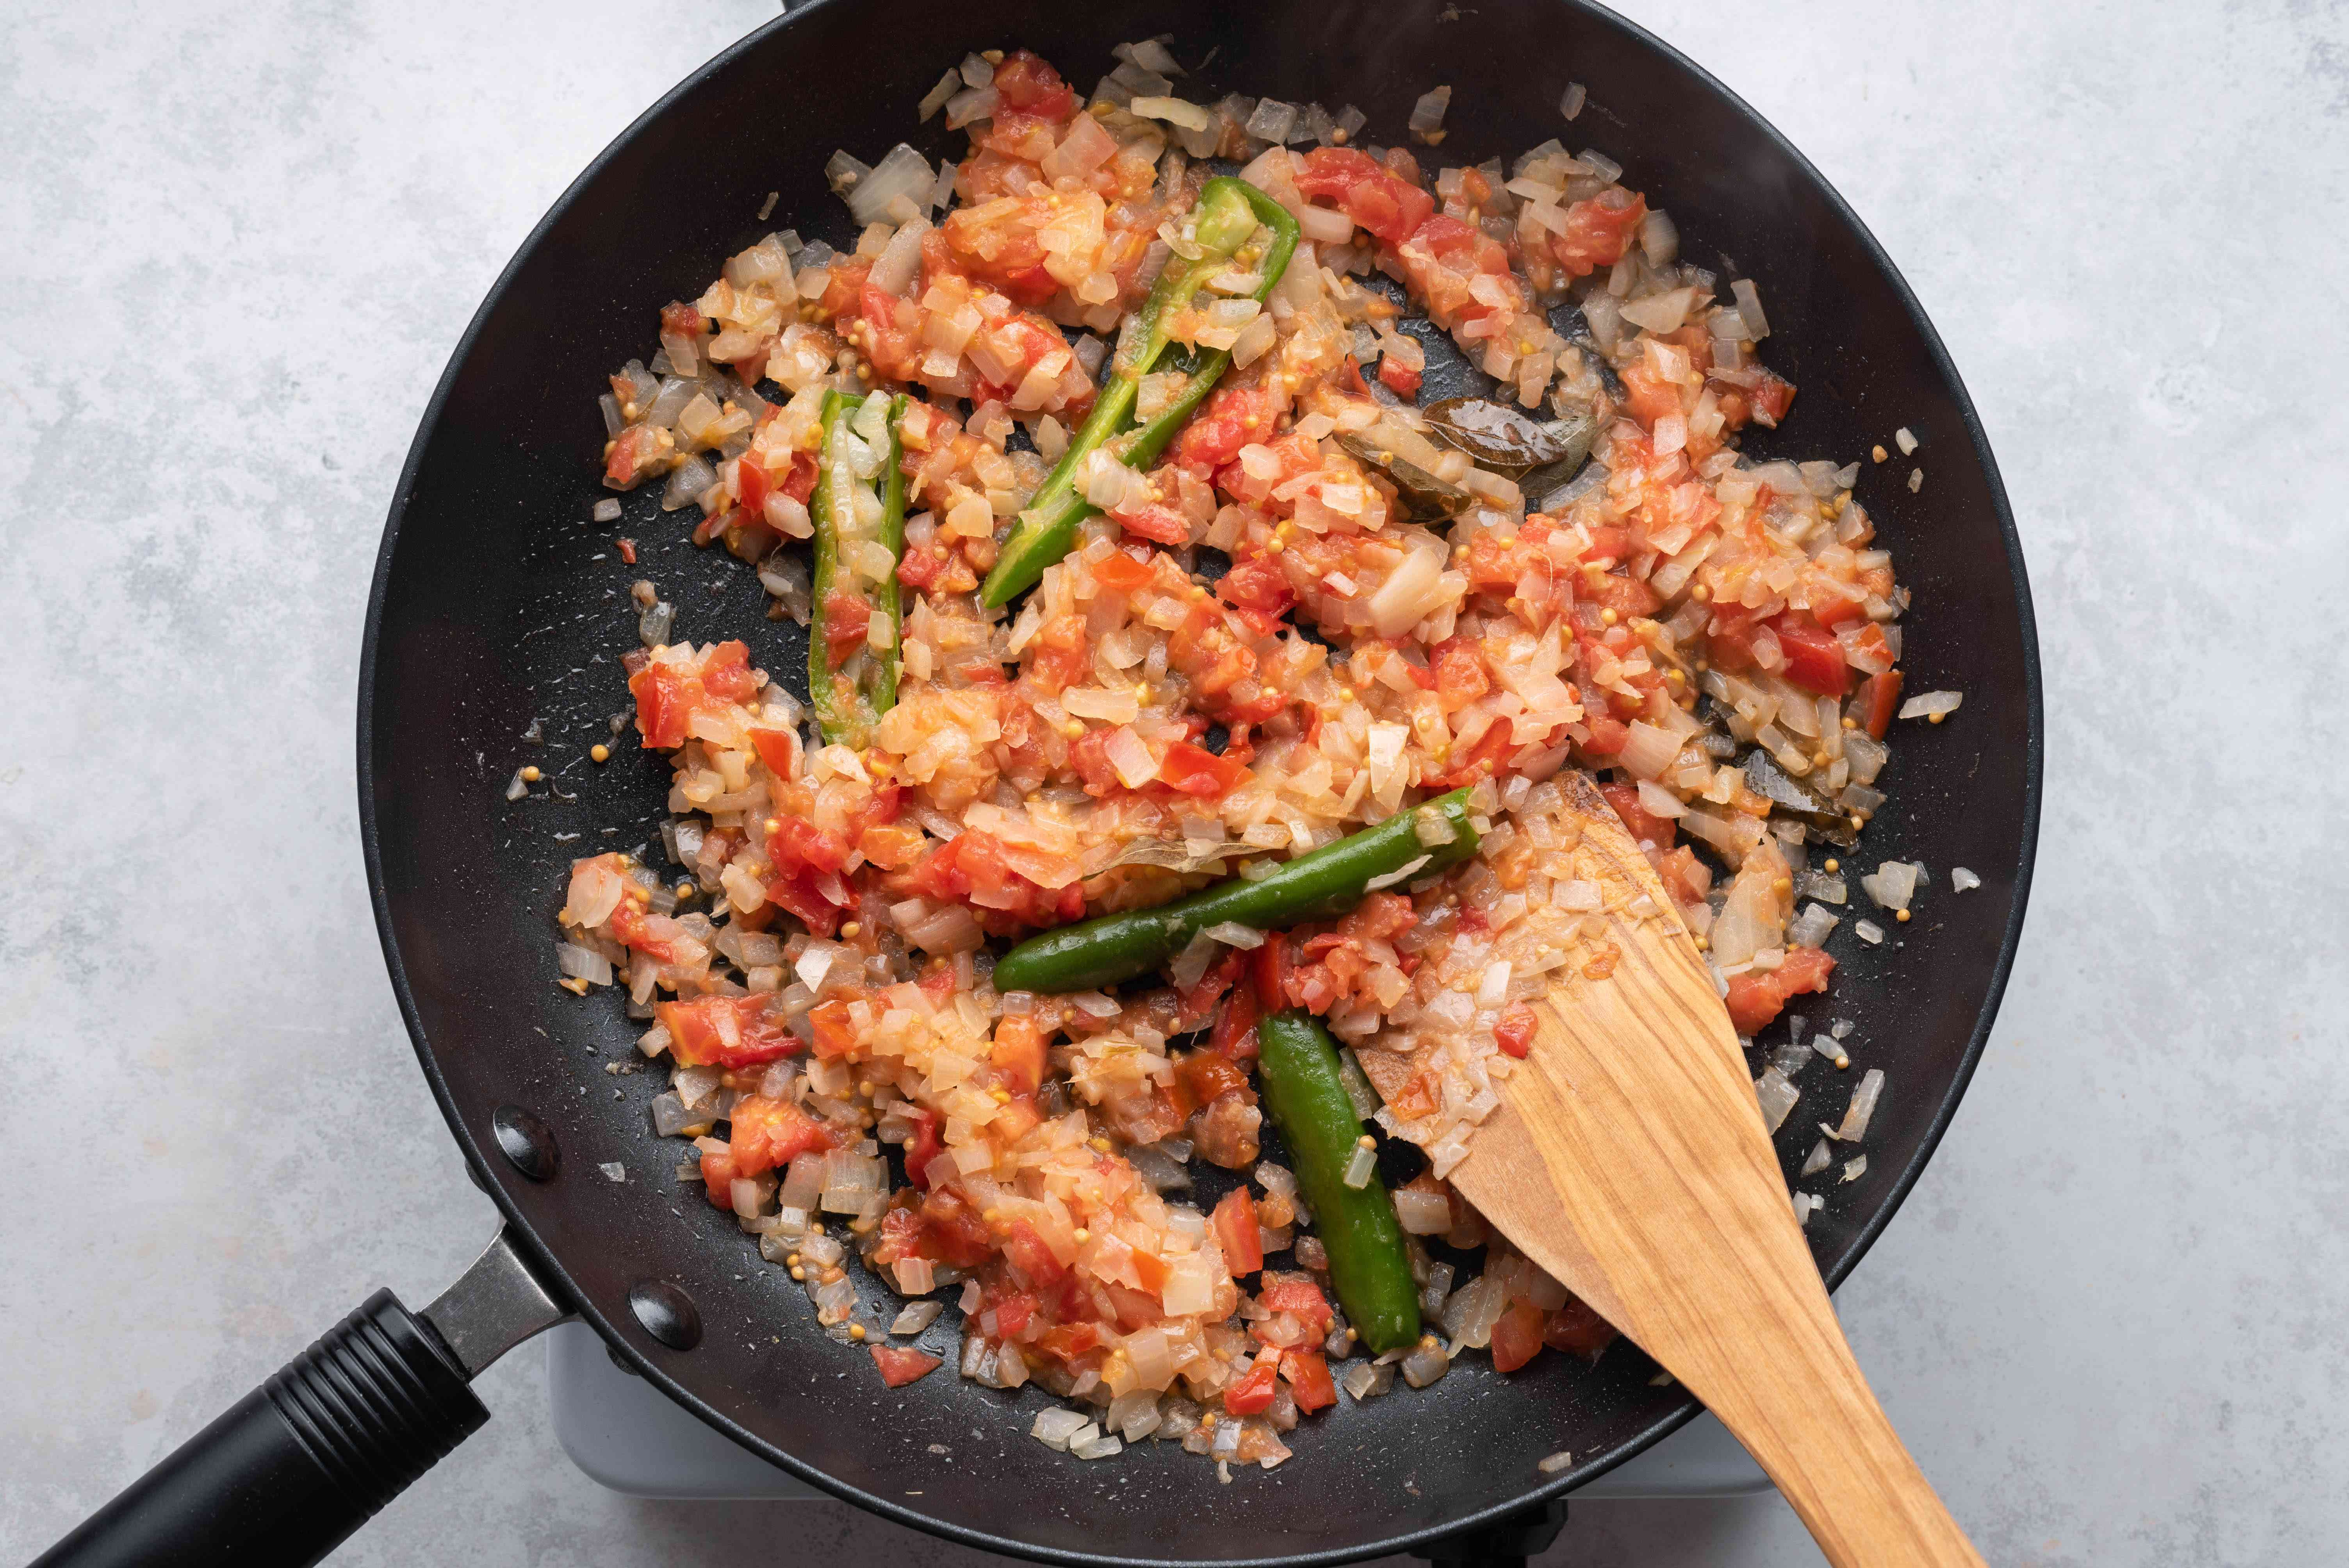 add tomatoes to the onion and spice mixture in the pan